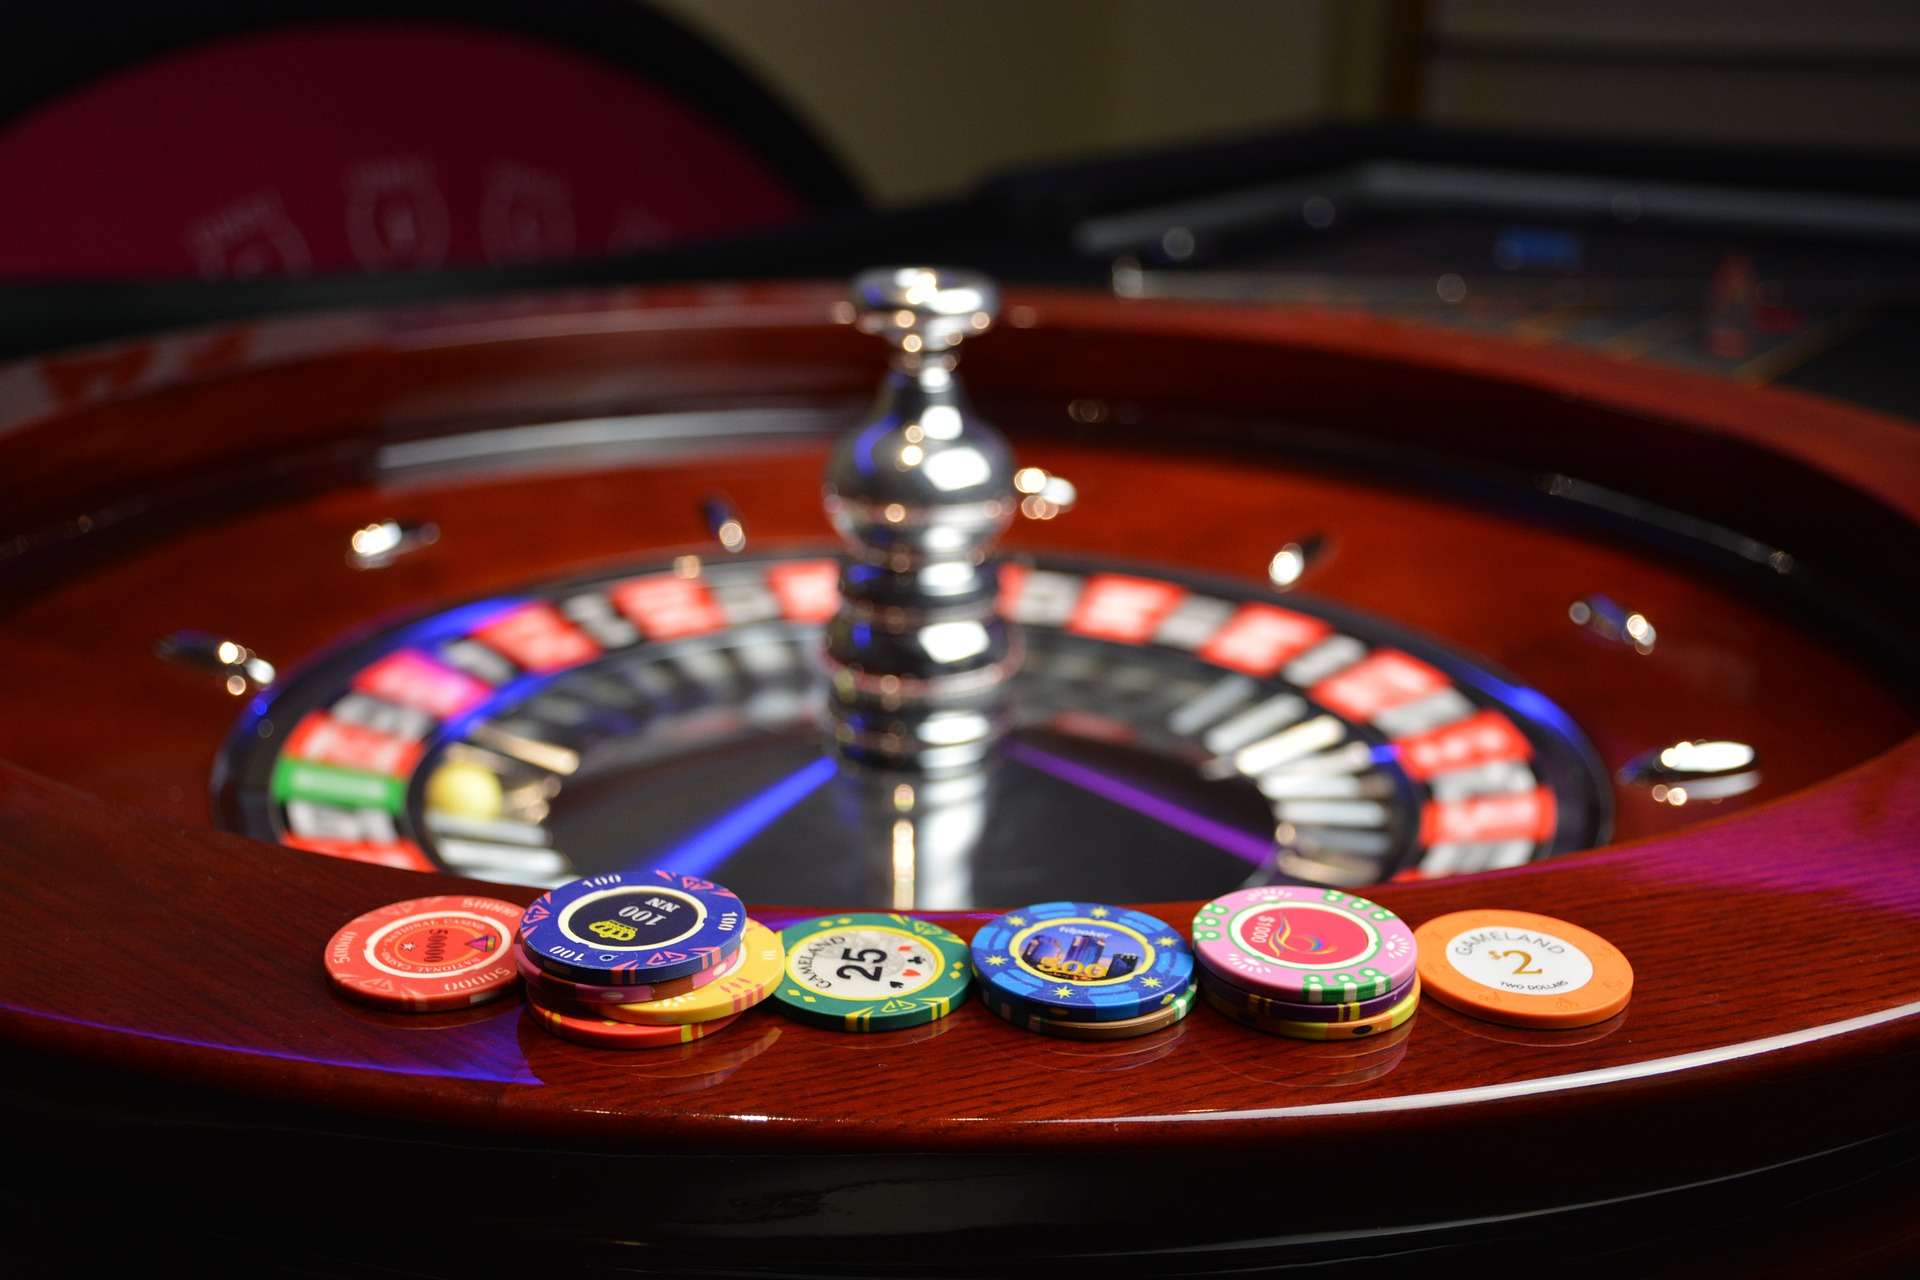 People are fond of online casino games